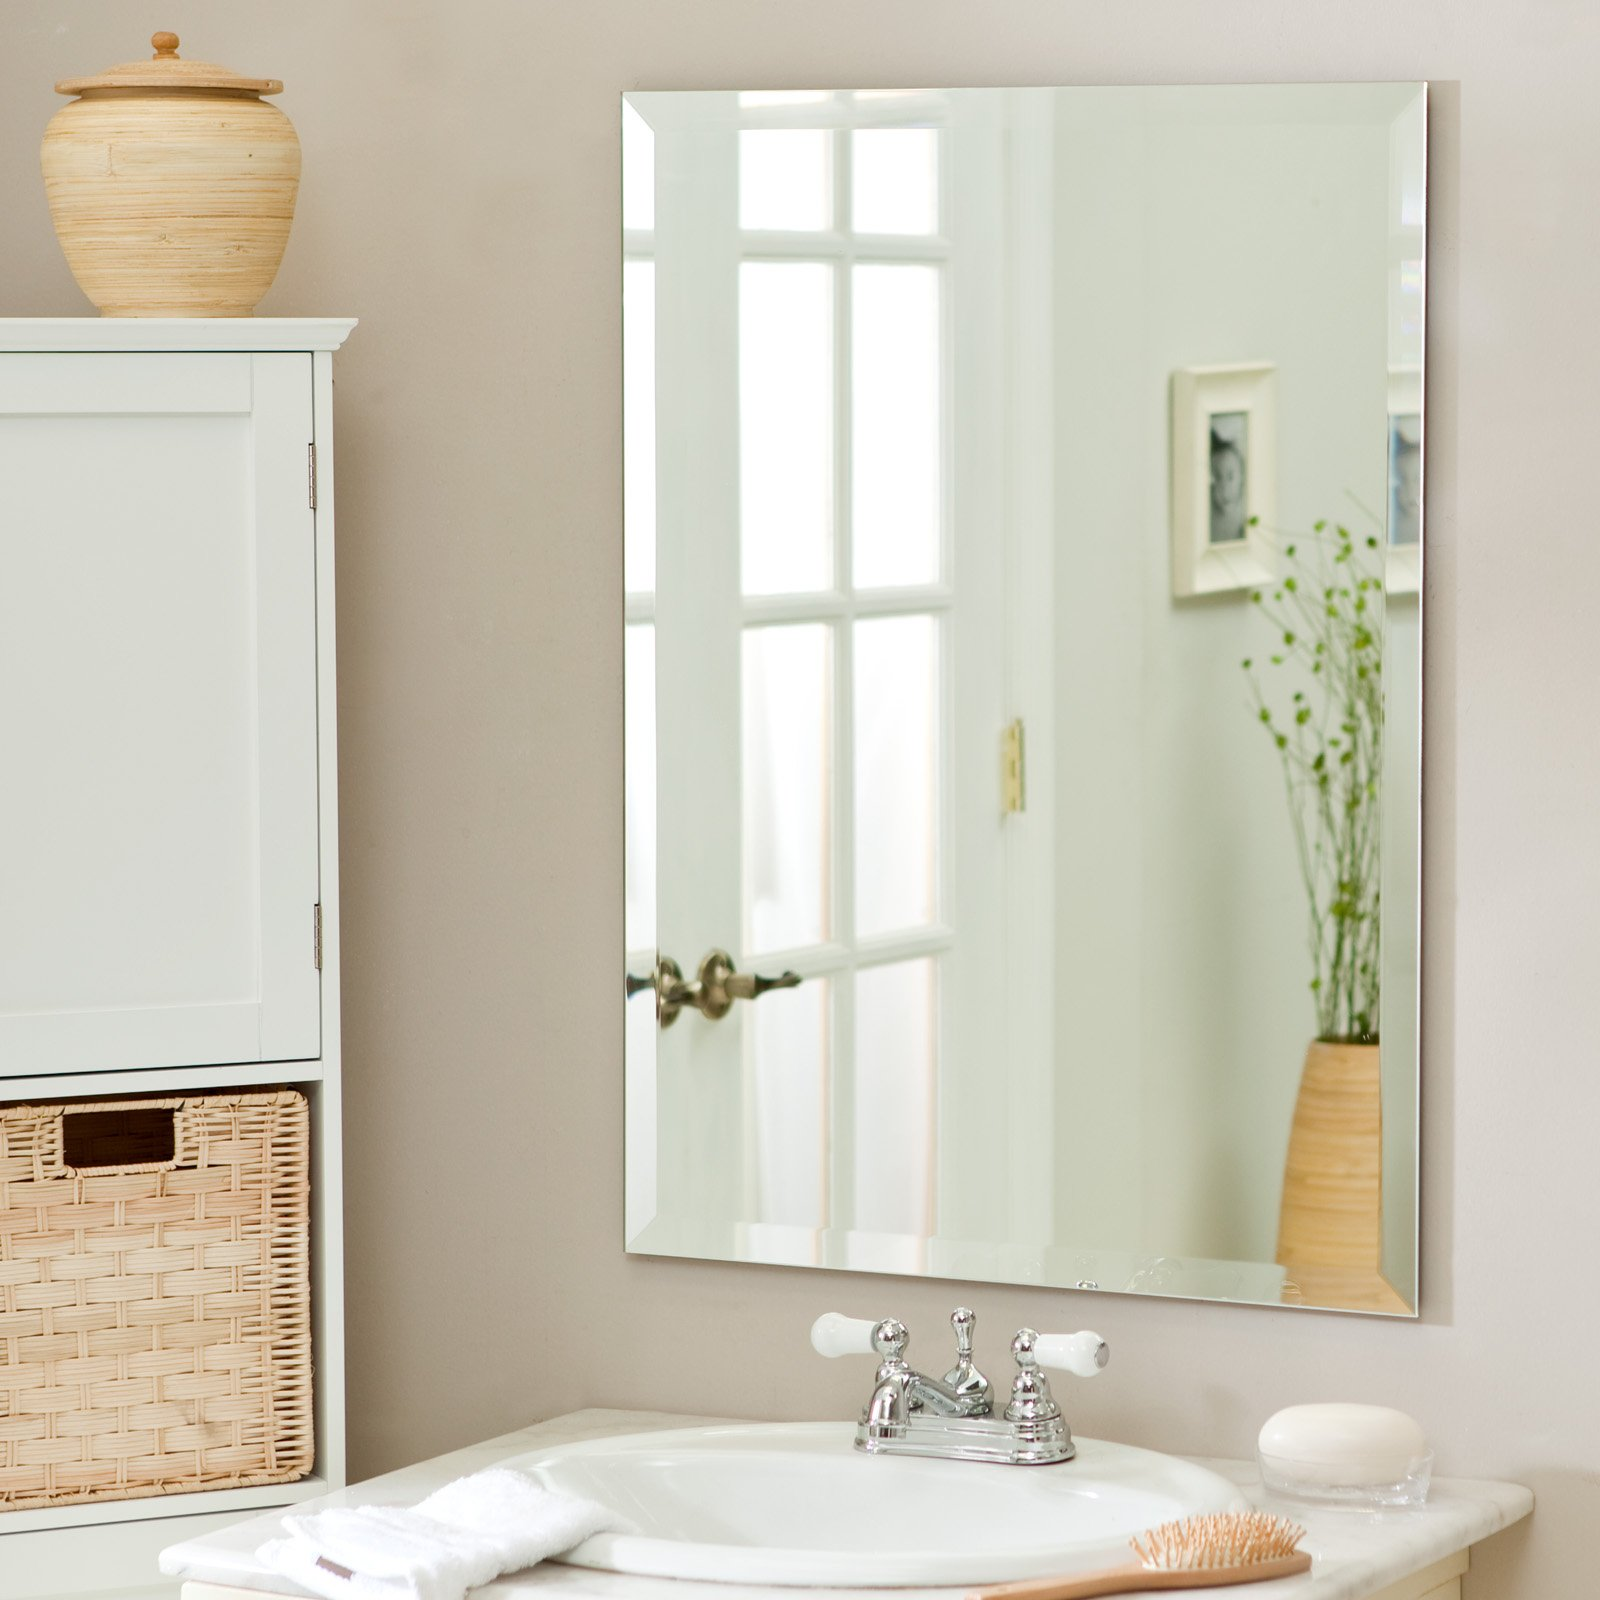 Mirrors for bathrooms decorating ideas midcityeast for Bathroom mirror ideas